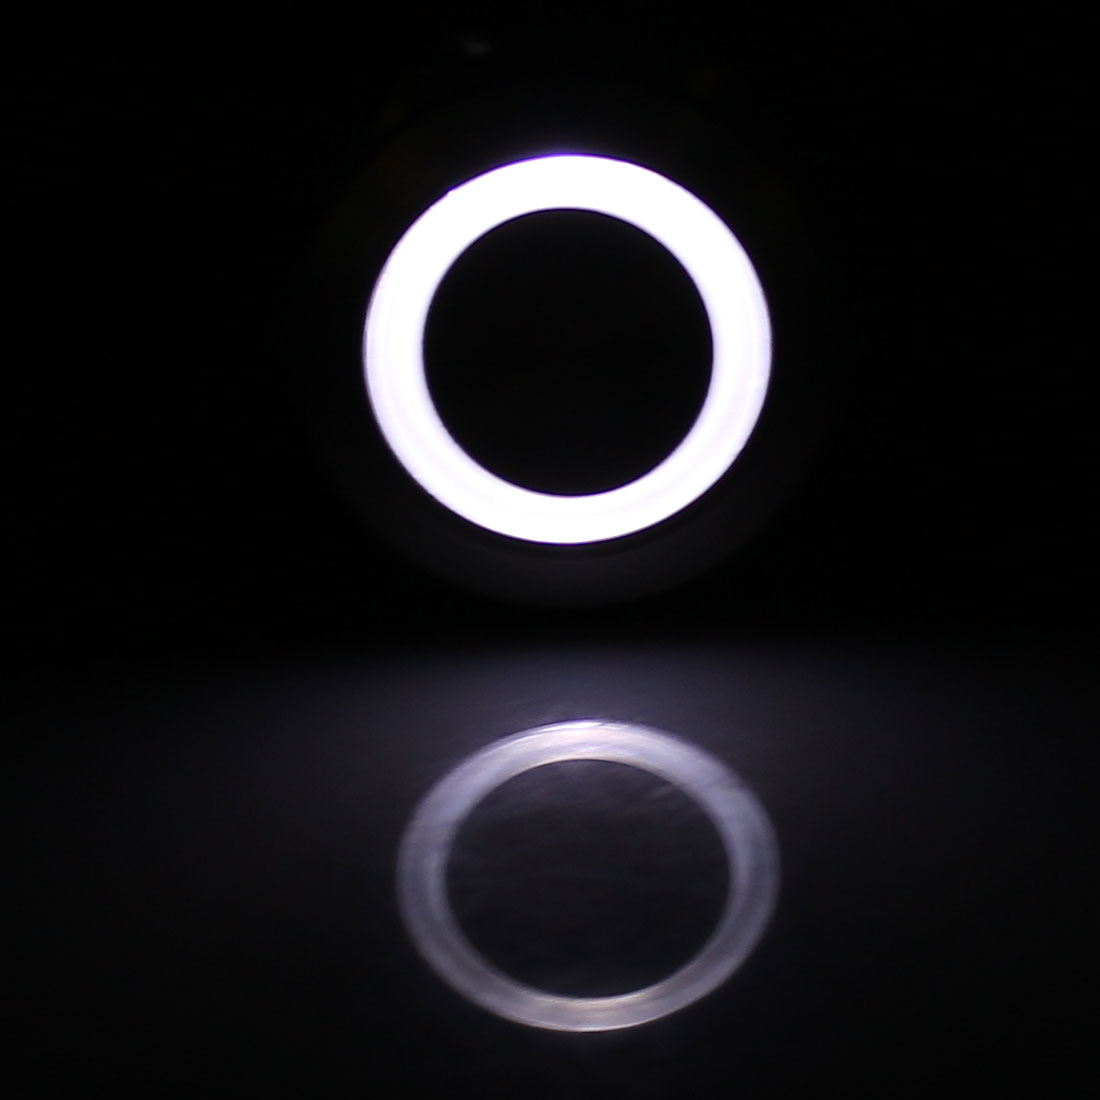 24V 25mm Thread Dia White LED Angle Eyes Momentary Metal Pushbutton Switch - image 3 of 4